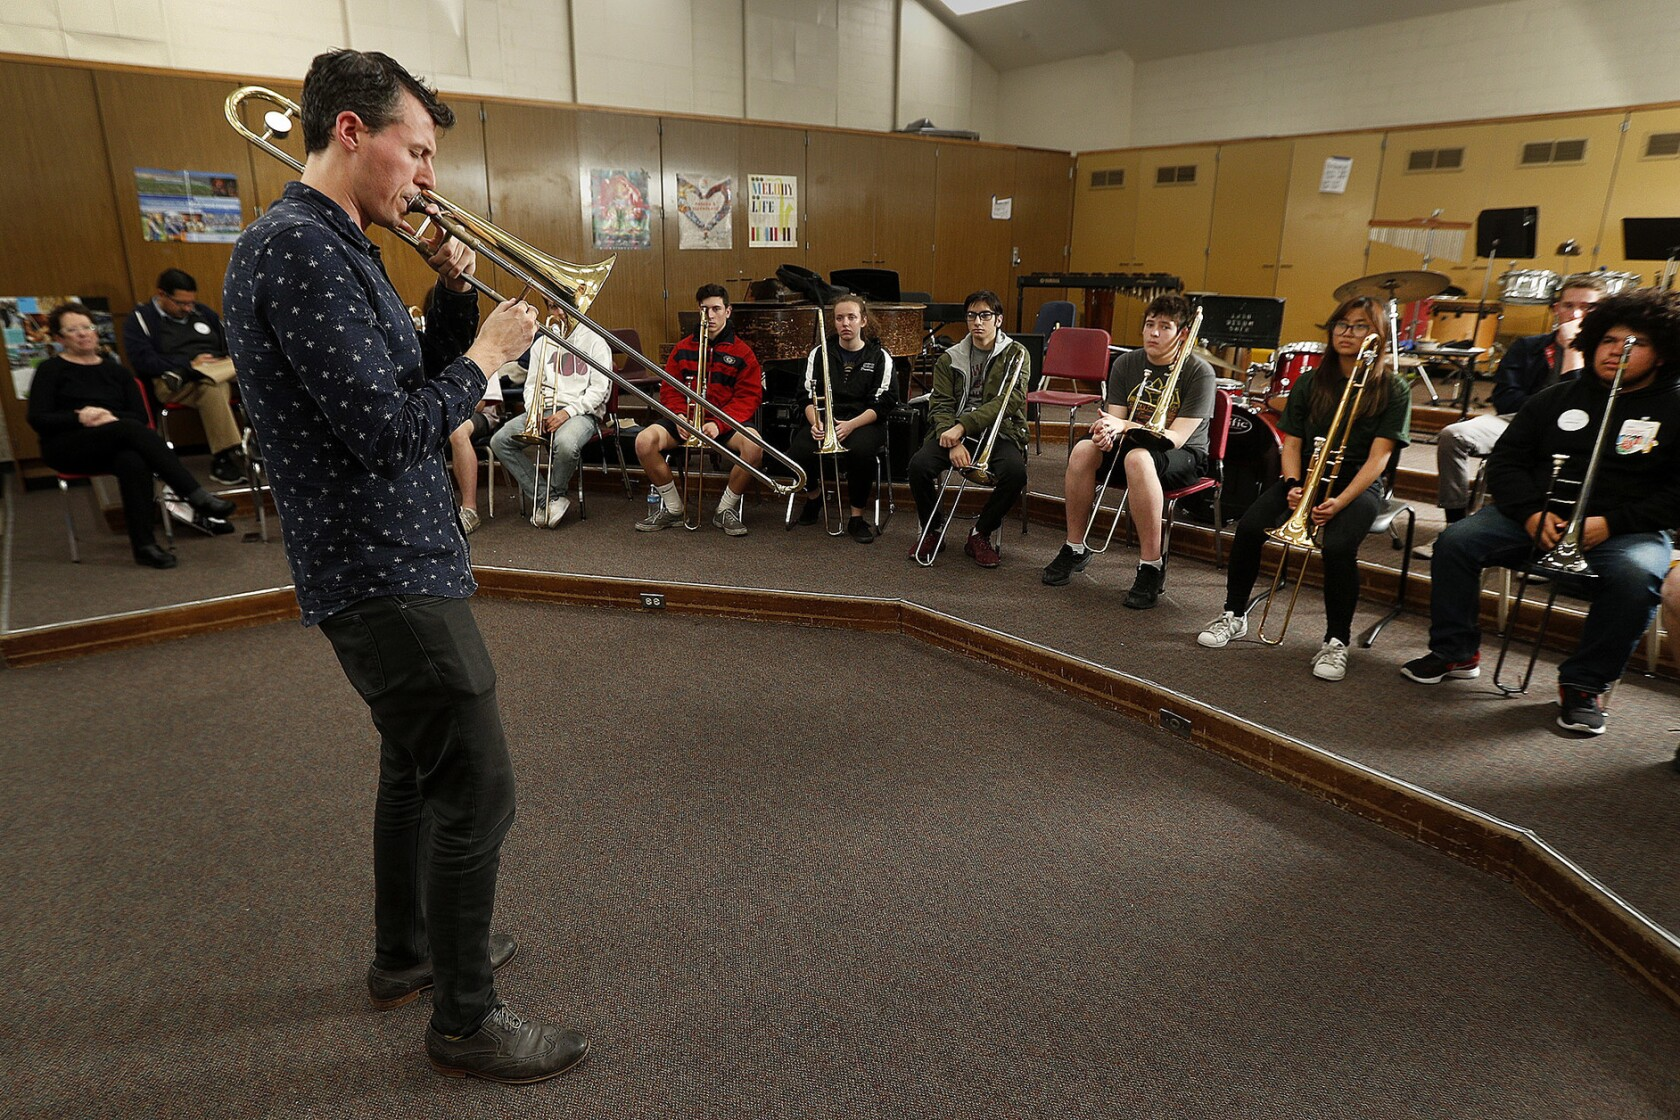 Musician offers jazzy tutorial for Glendale High trombonists - Los